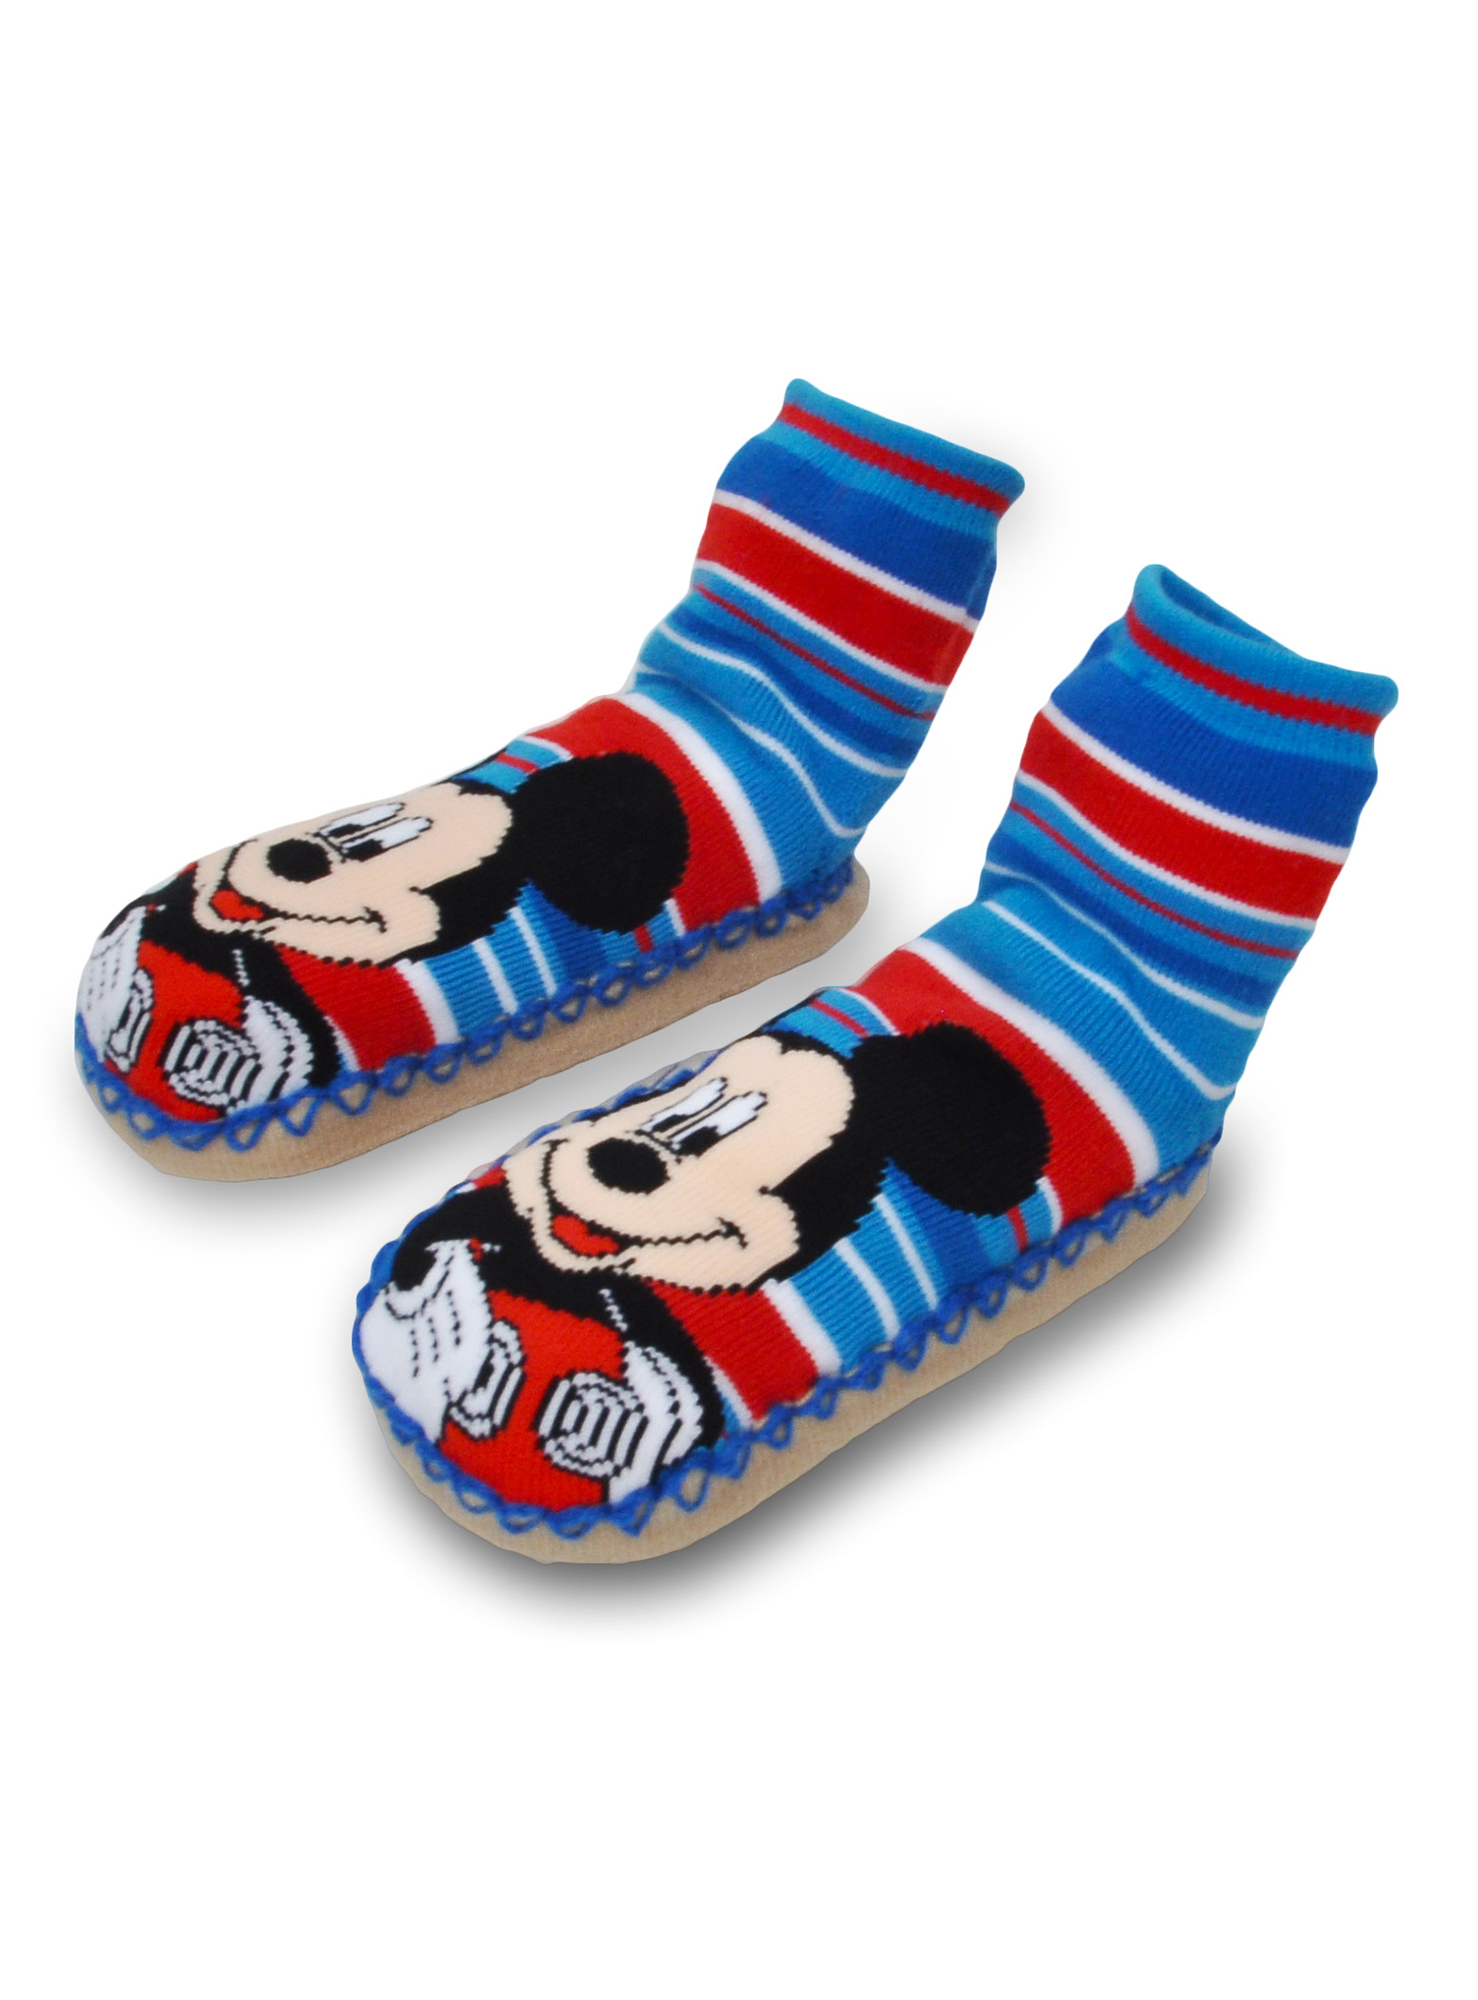 Disney Mickey//Minnie Mouse Slipper Socks with Grippers for Boys /& Girls